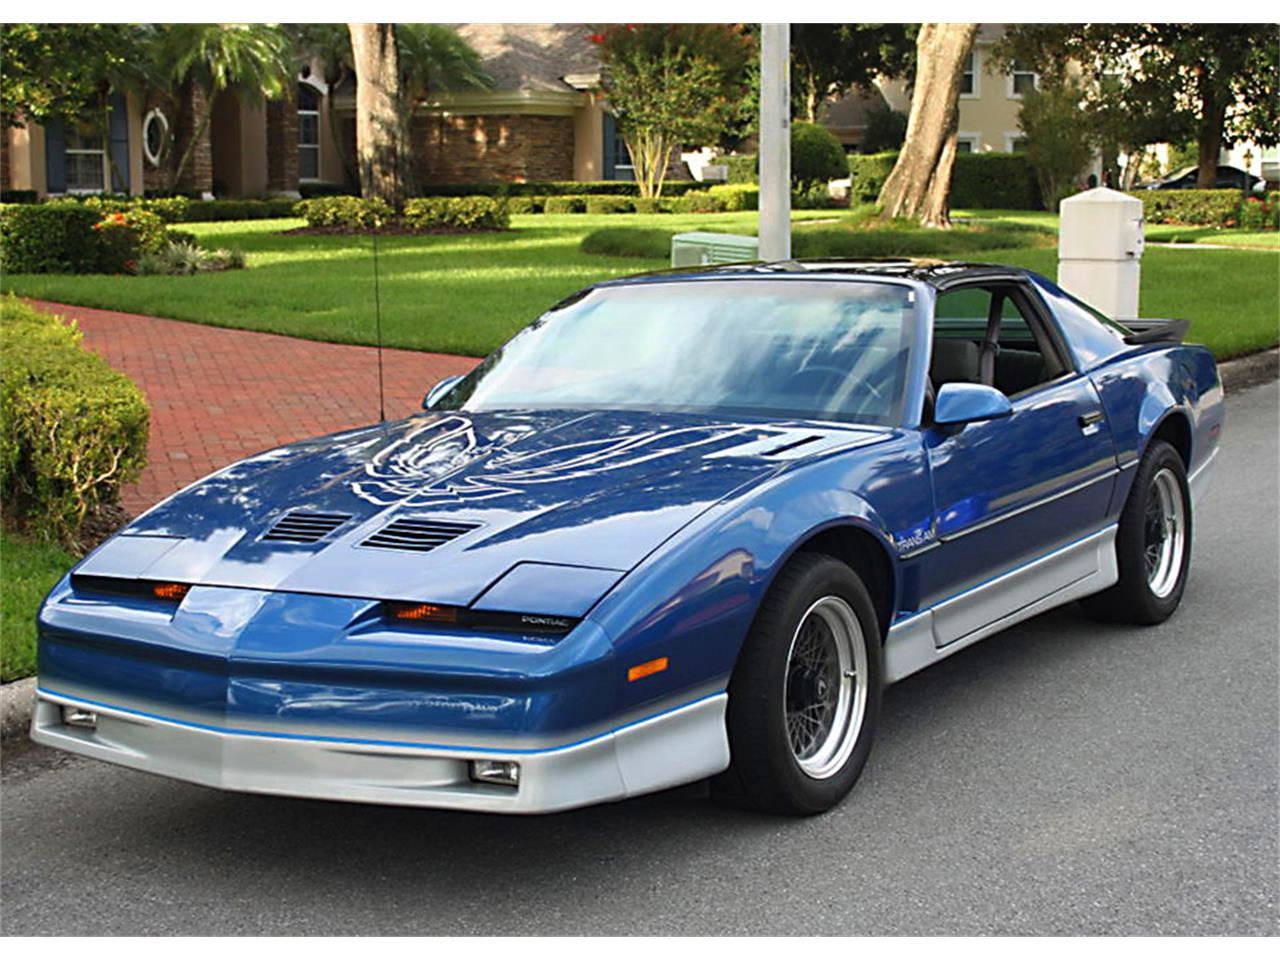 1986 pontiac firebird trans am for sale classiccars com cc 1138825 1986 pontiac firebird trans am for sale